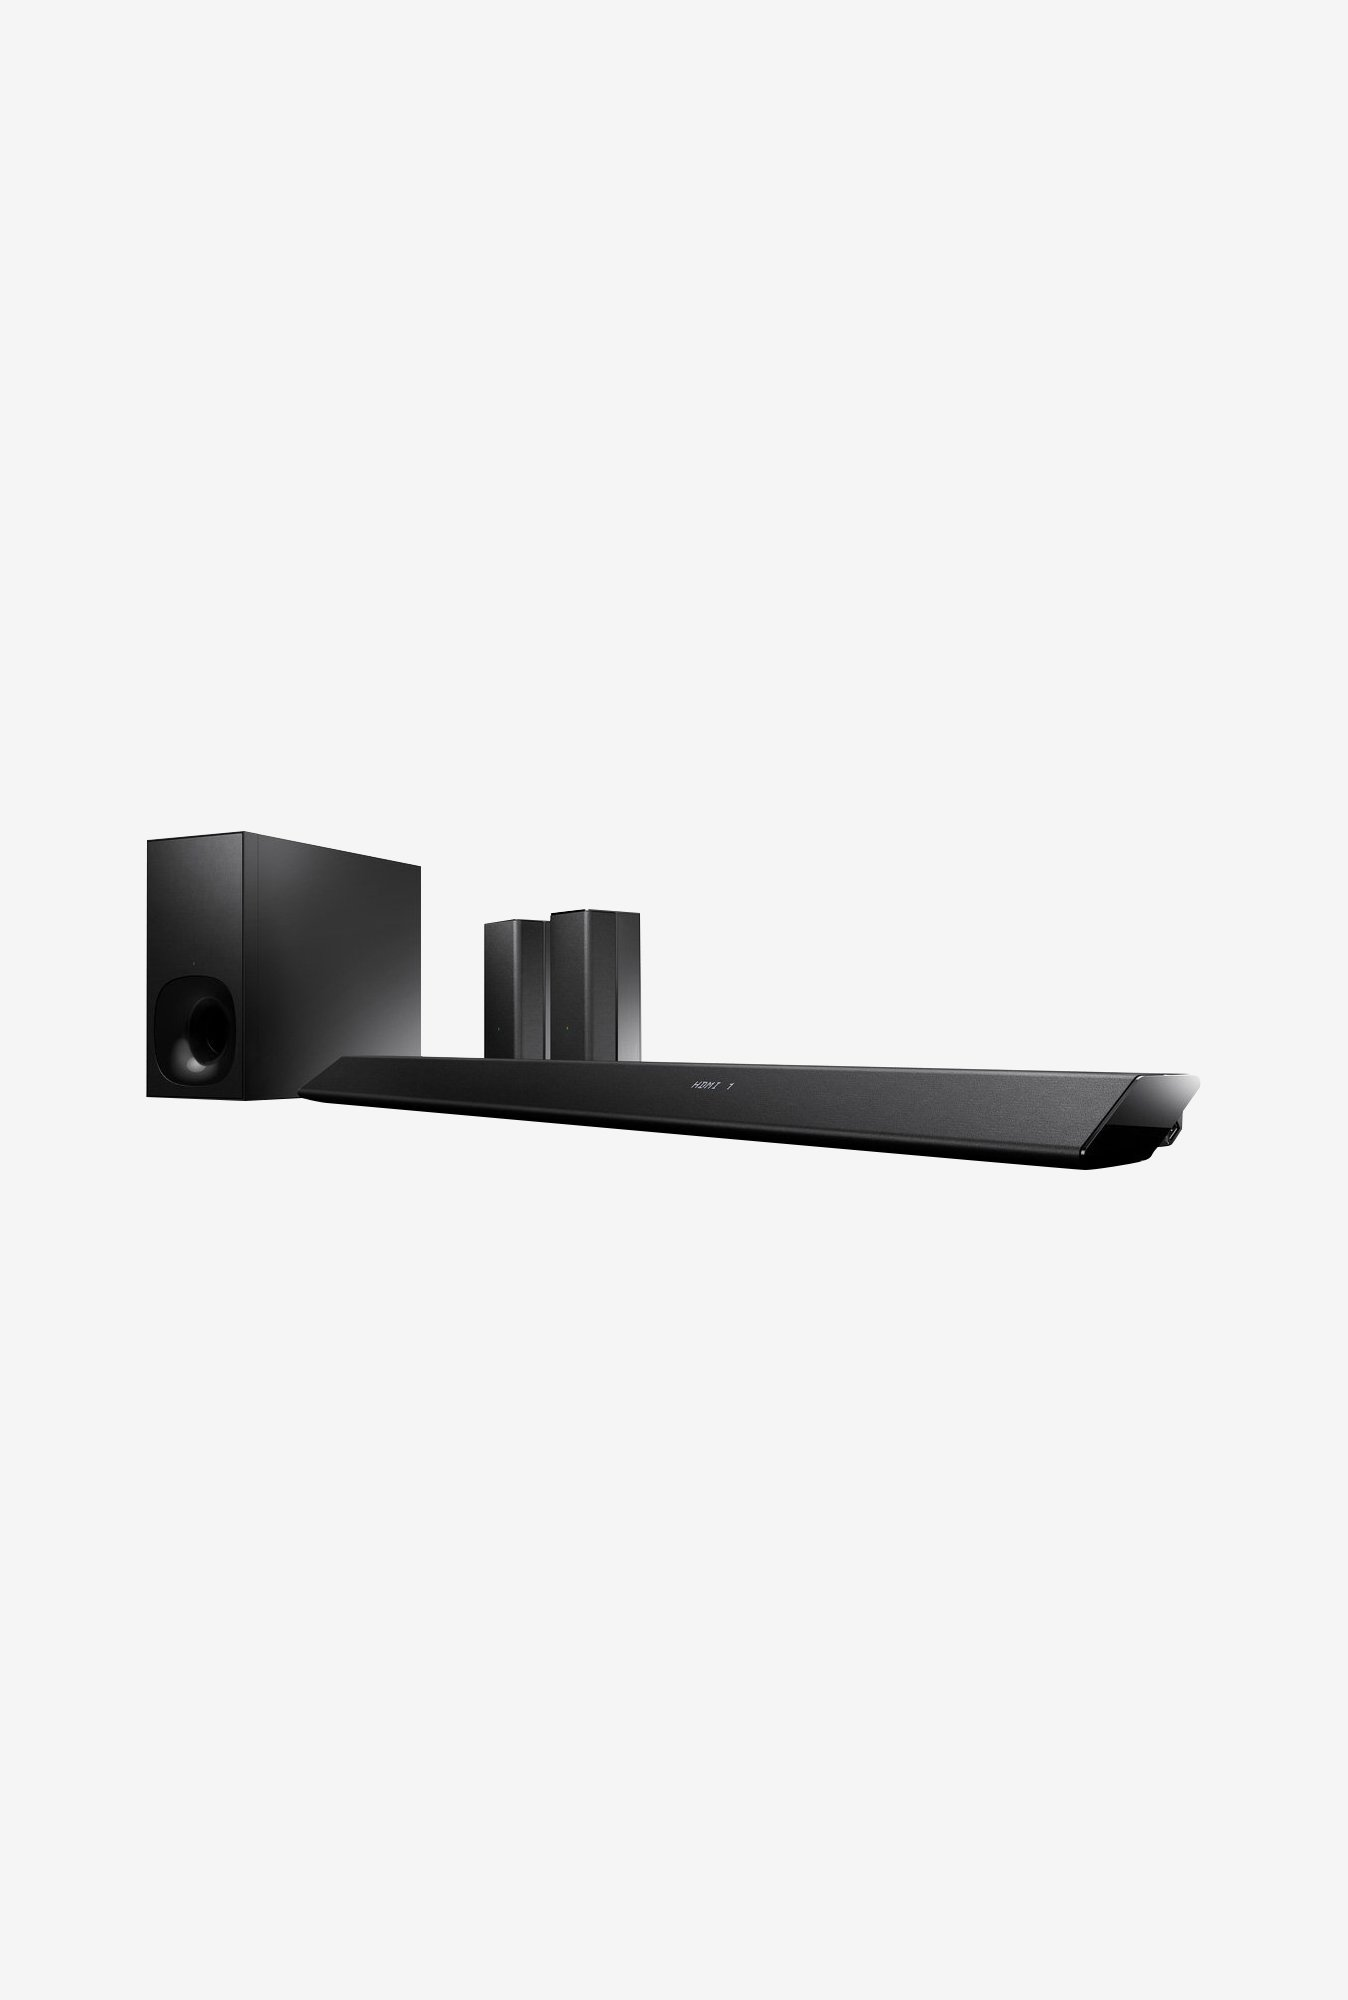 Sony HT-RT5 5.1 ch Soundbar with Subwoofer (Black)